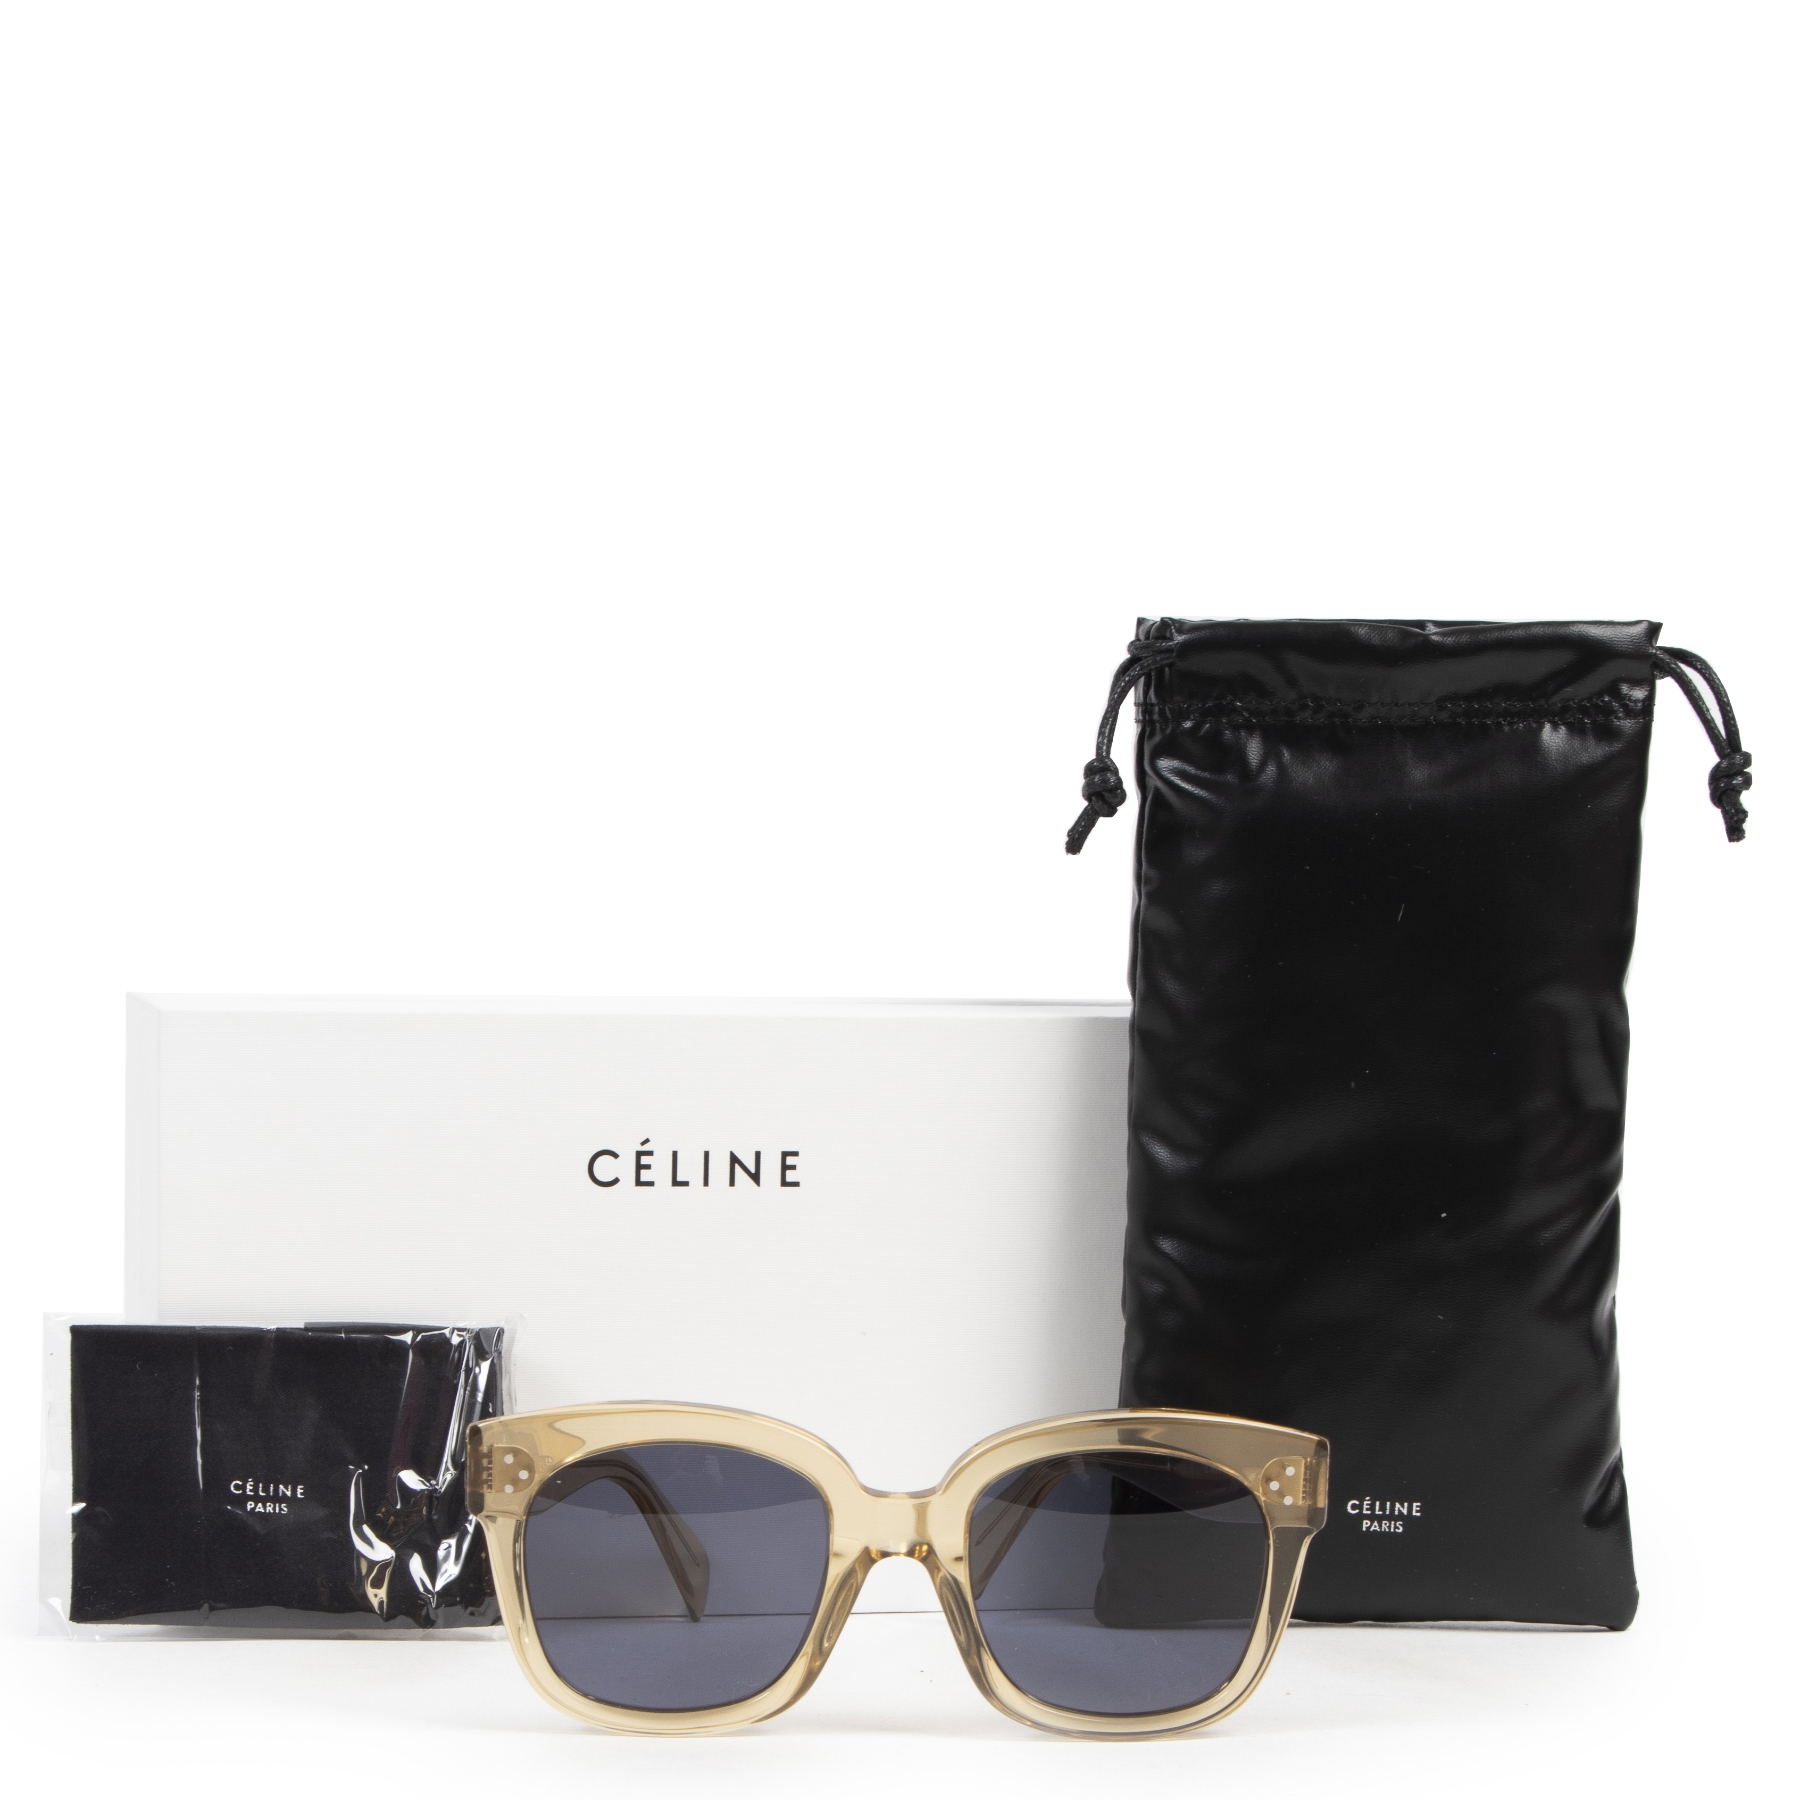 Authentic secondhand Céline New Audrey Sunglasses in Transparent Champagne Acetate designer accessories fashion luxury vintage webshop safe secure online shopping